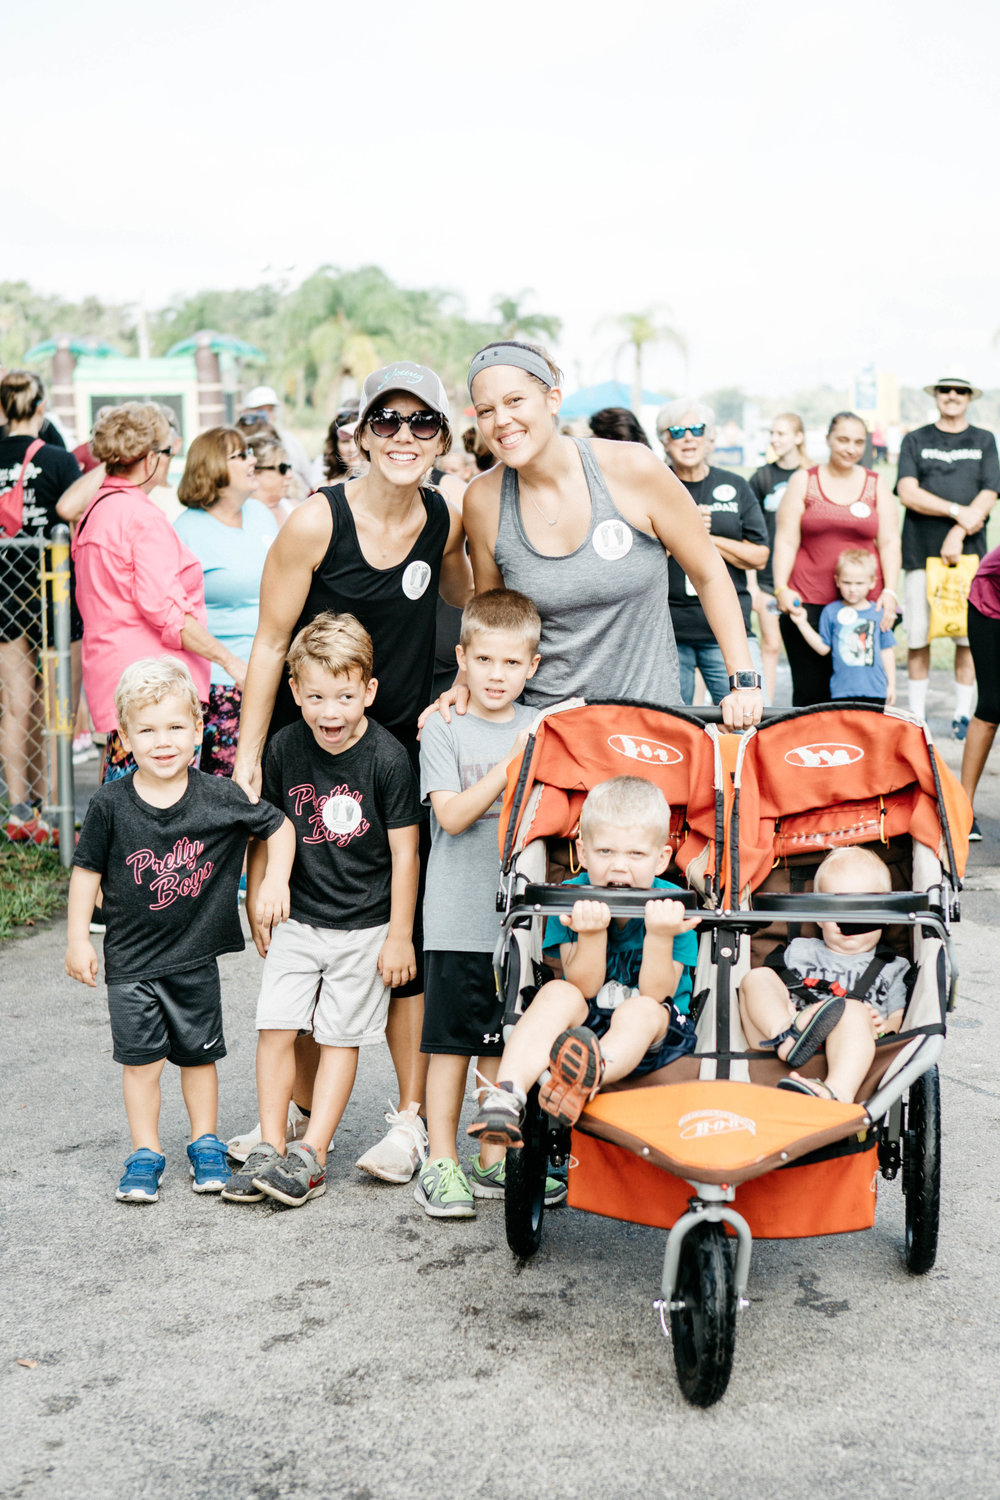 annas_foundation_manatee_run-22.jpg